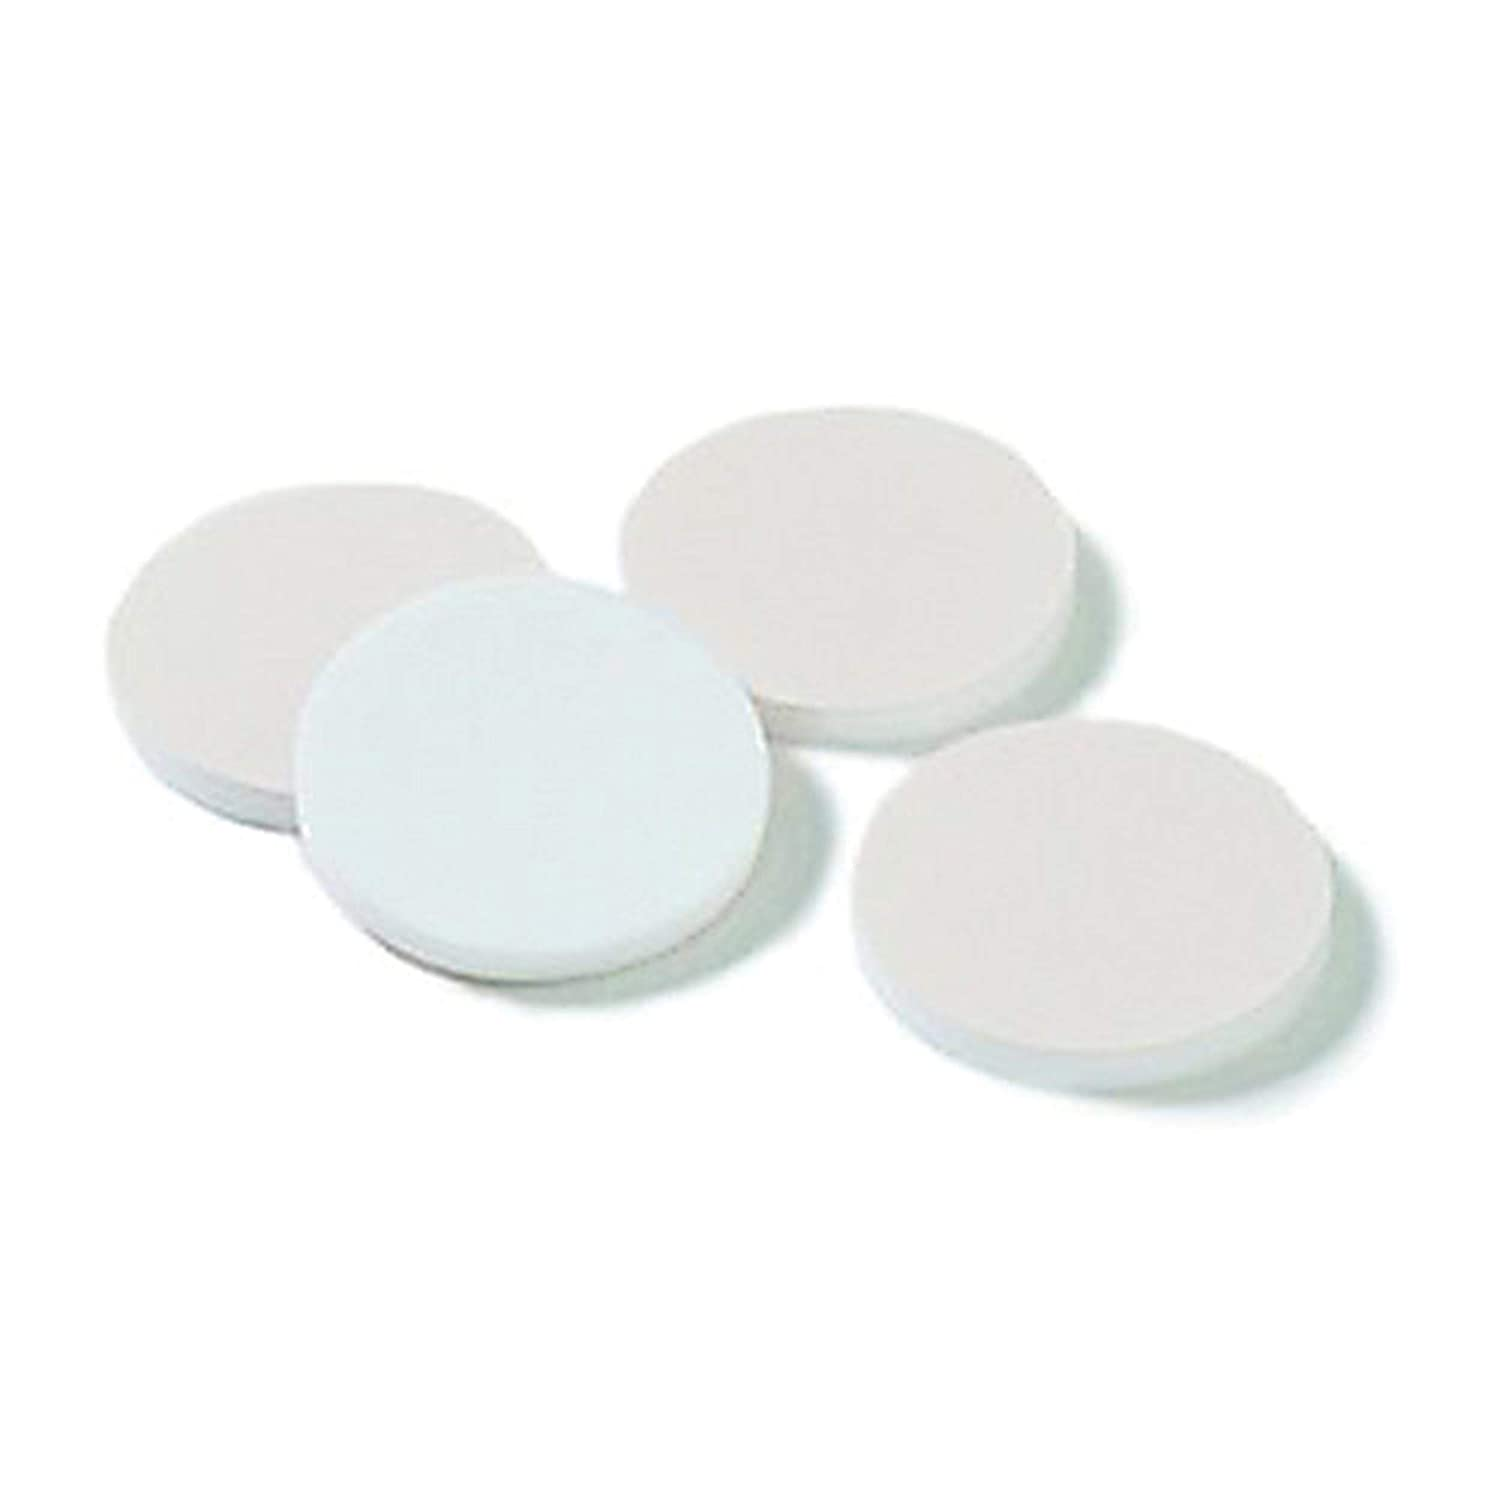 Millipore Sigma 23193-U Septa for Use with 20 Tan PTFE//Silicone 0.125 Thickness 22 mm Diameter Pack of 100 40 or 60 ml Vial